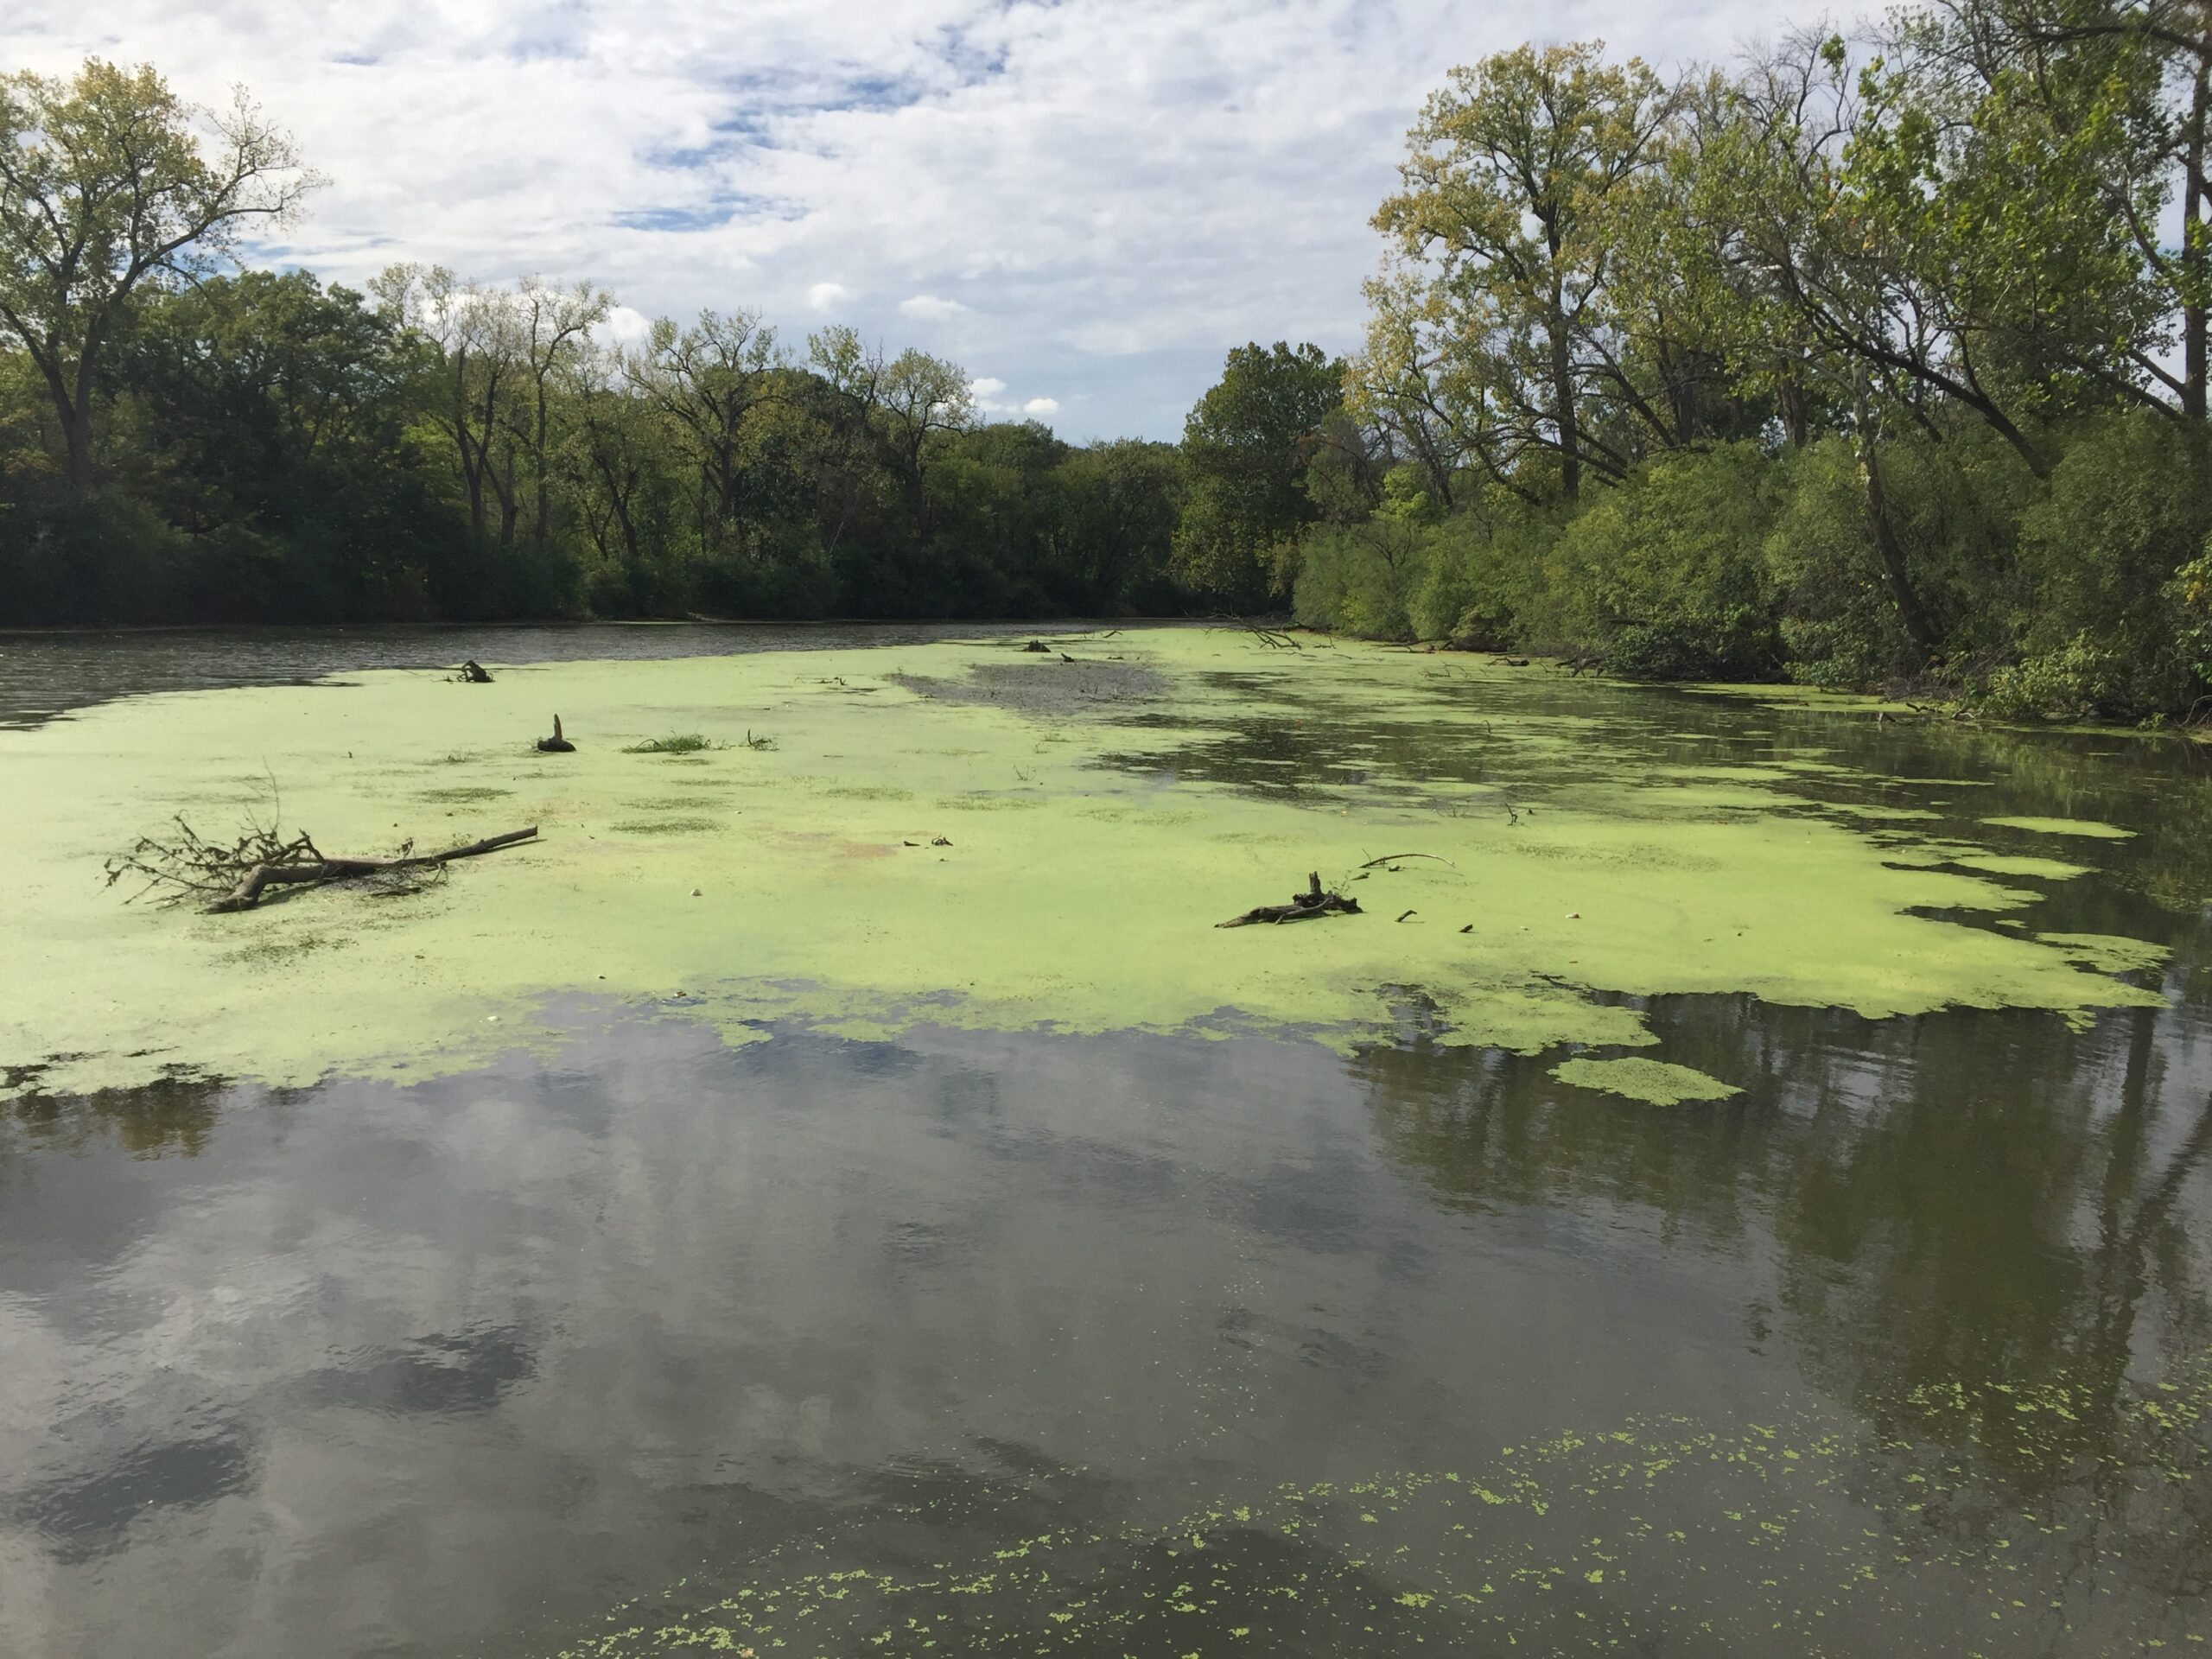 Algae covers the surface of the water